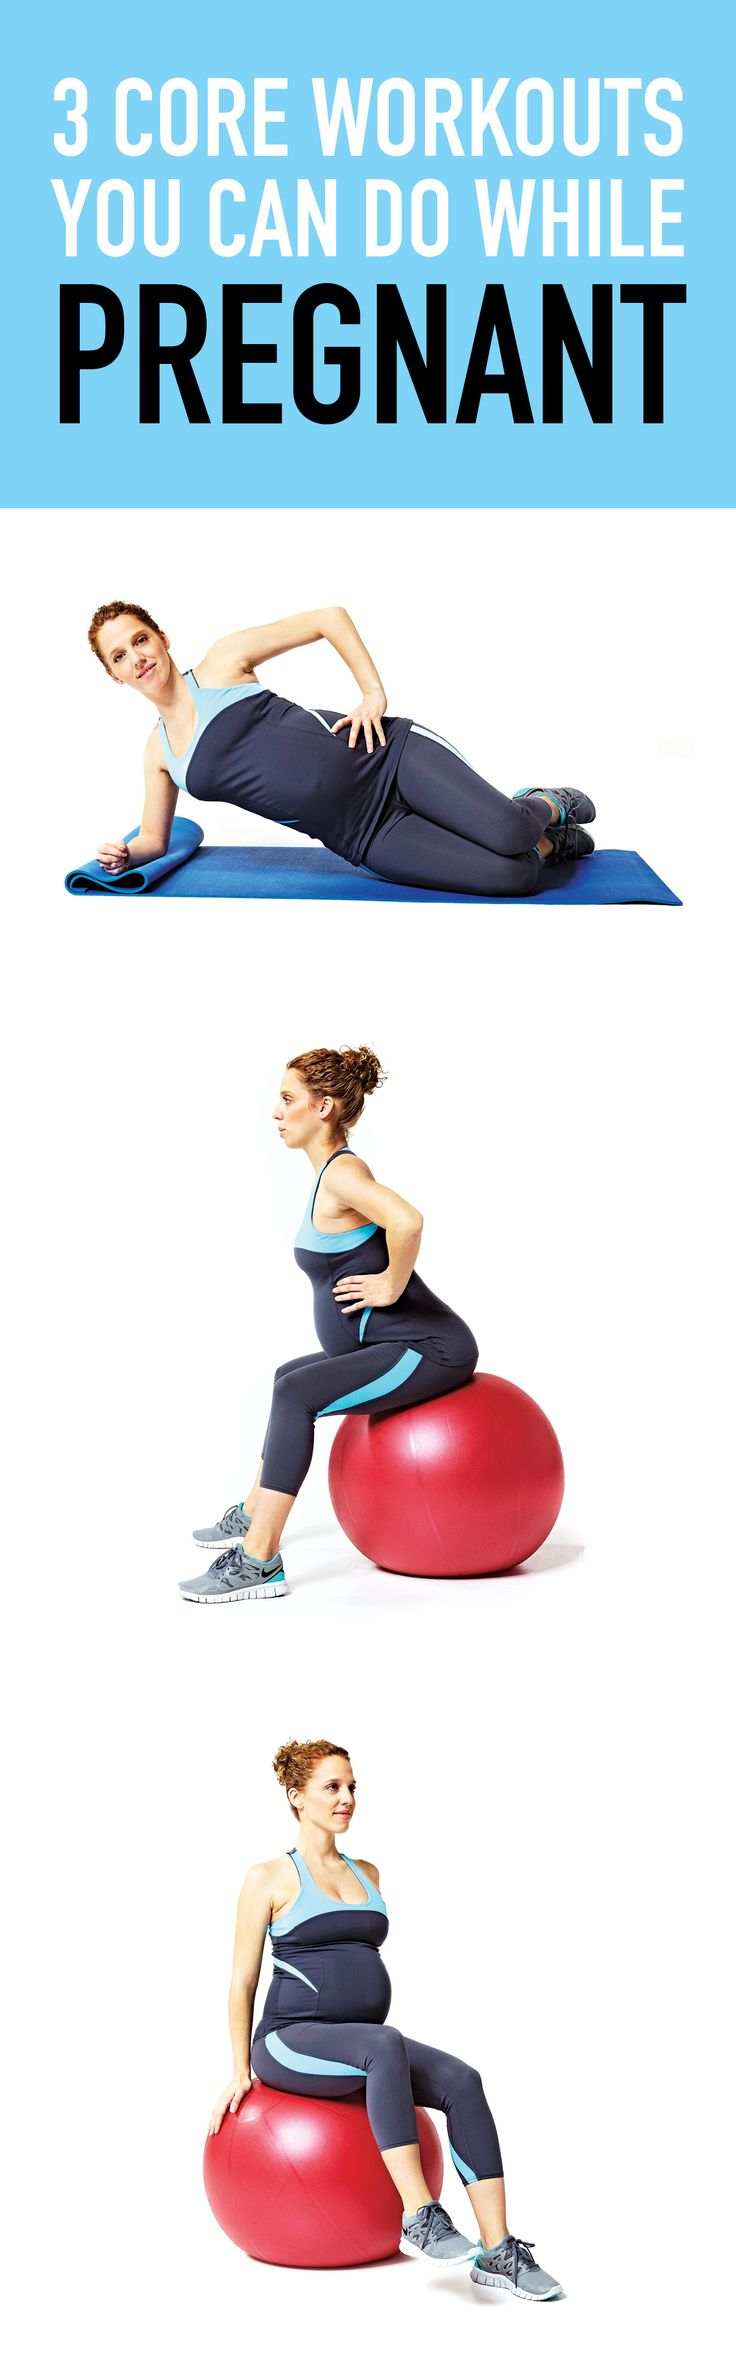 This fabulous pregnancy workout will get you toning your core muscle group and shoulders! #pregnancy #pregnancyfitness #pregnancyworkout